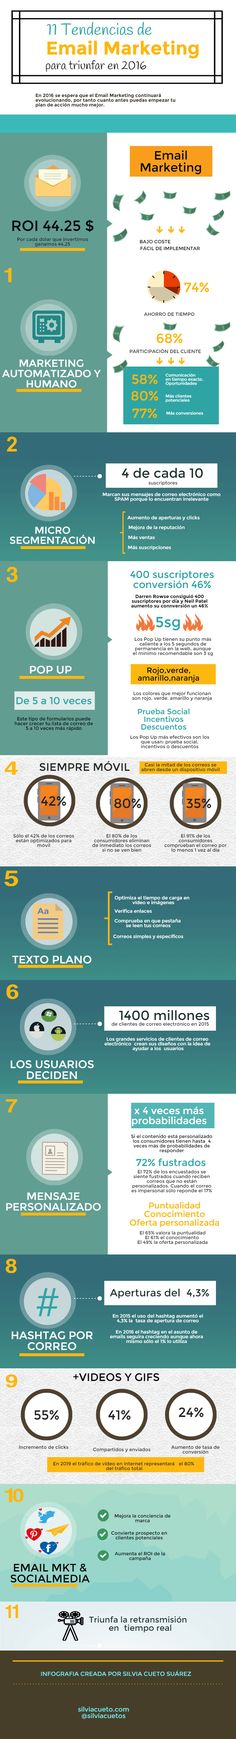 tendencias #email #m